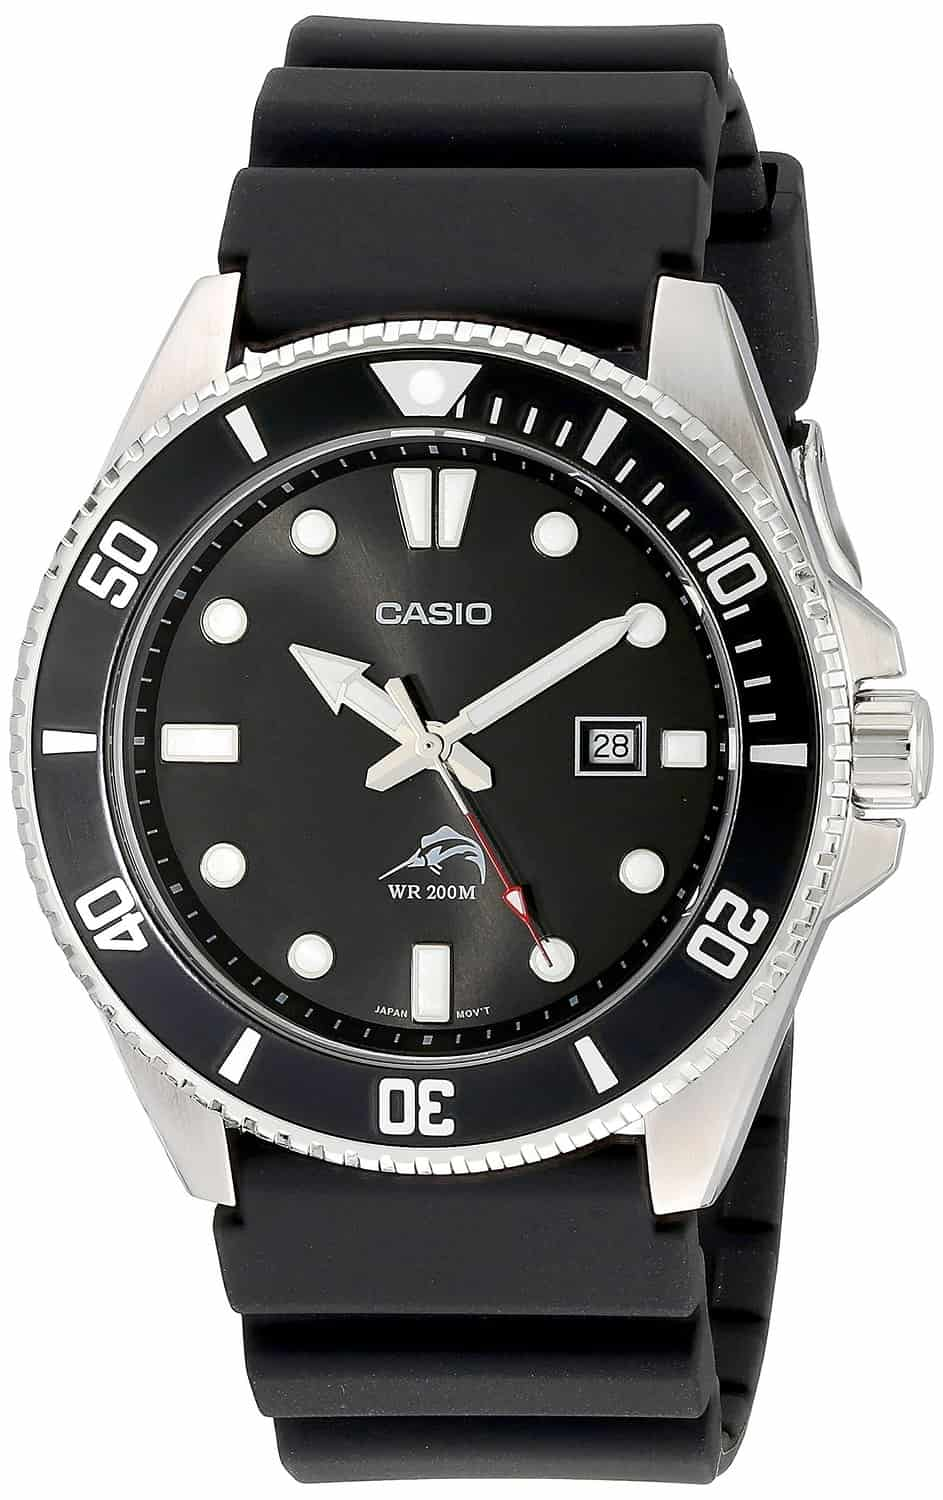 Casio Men MDV106-1AV 200M Duro Analog Watch